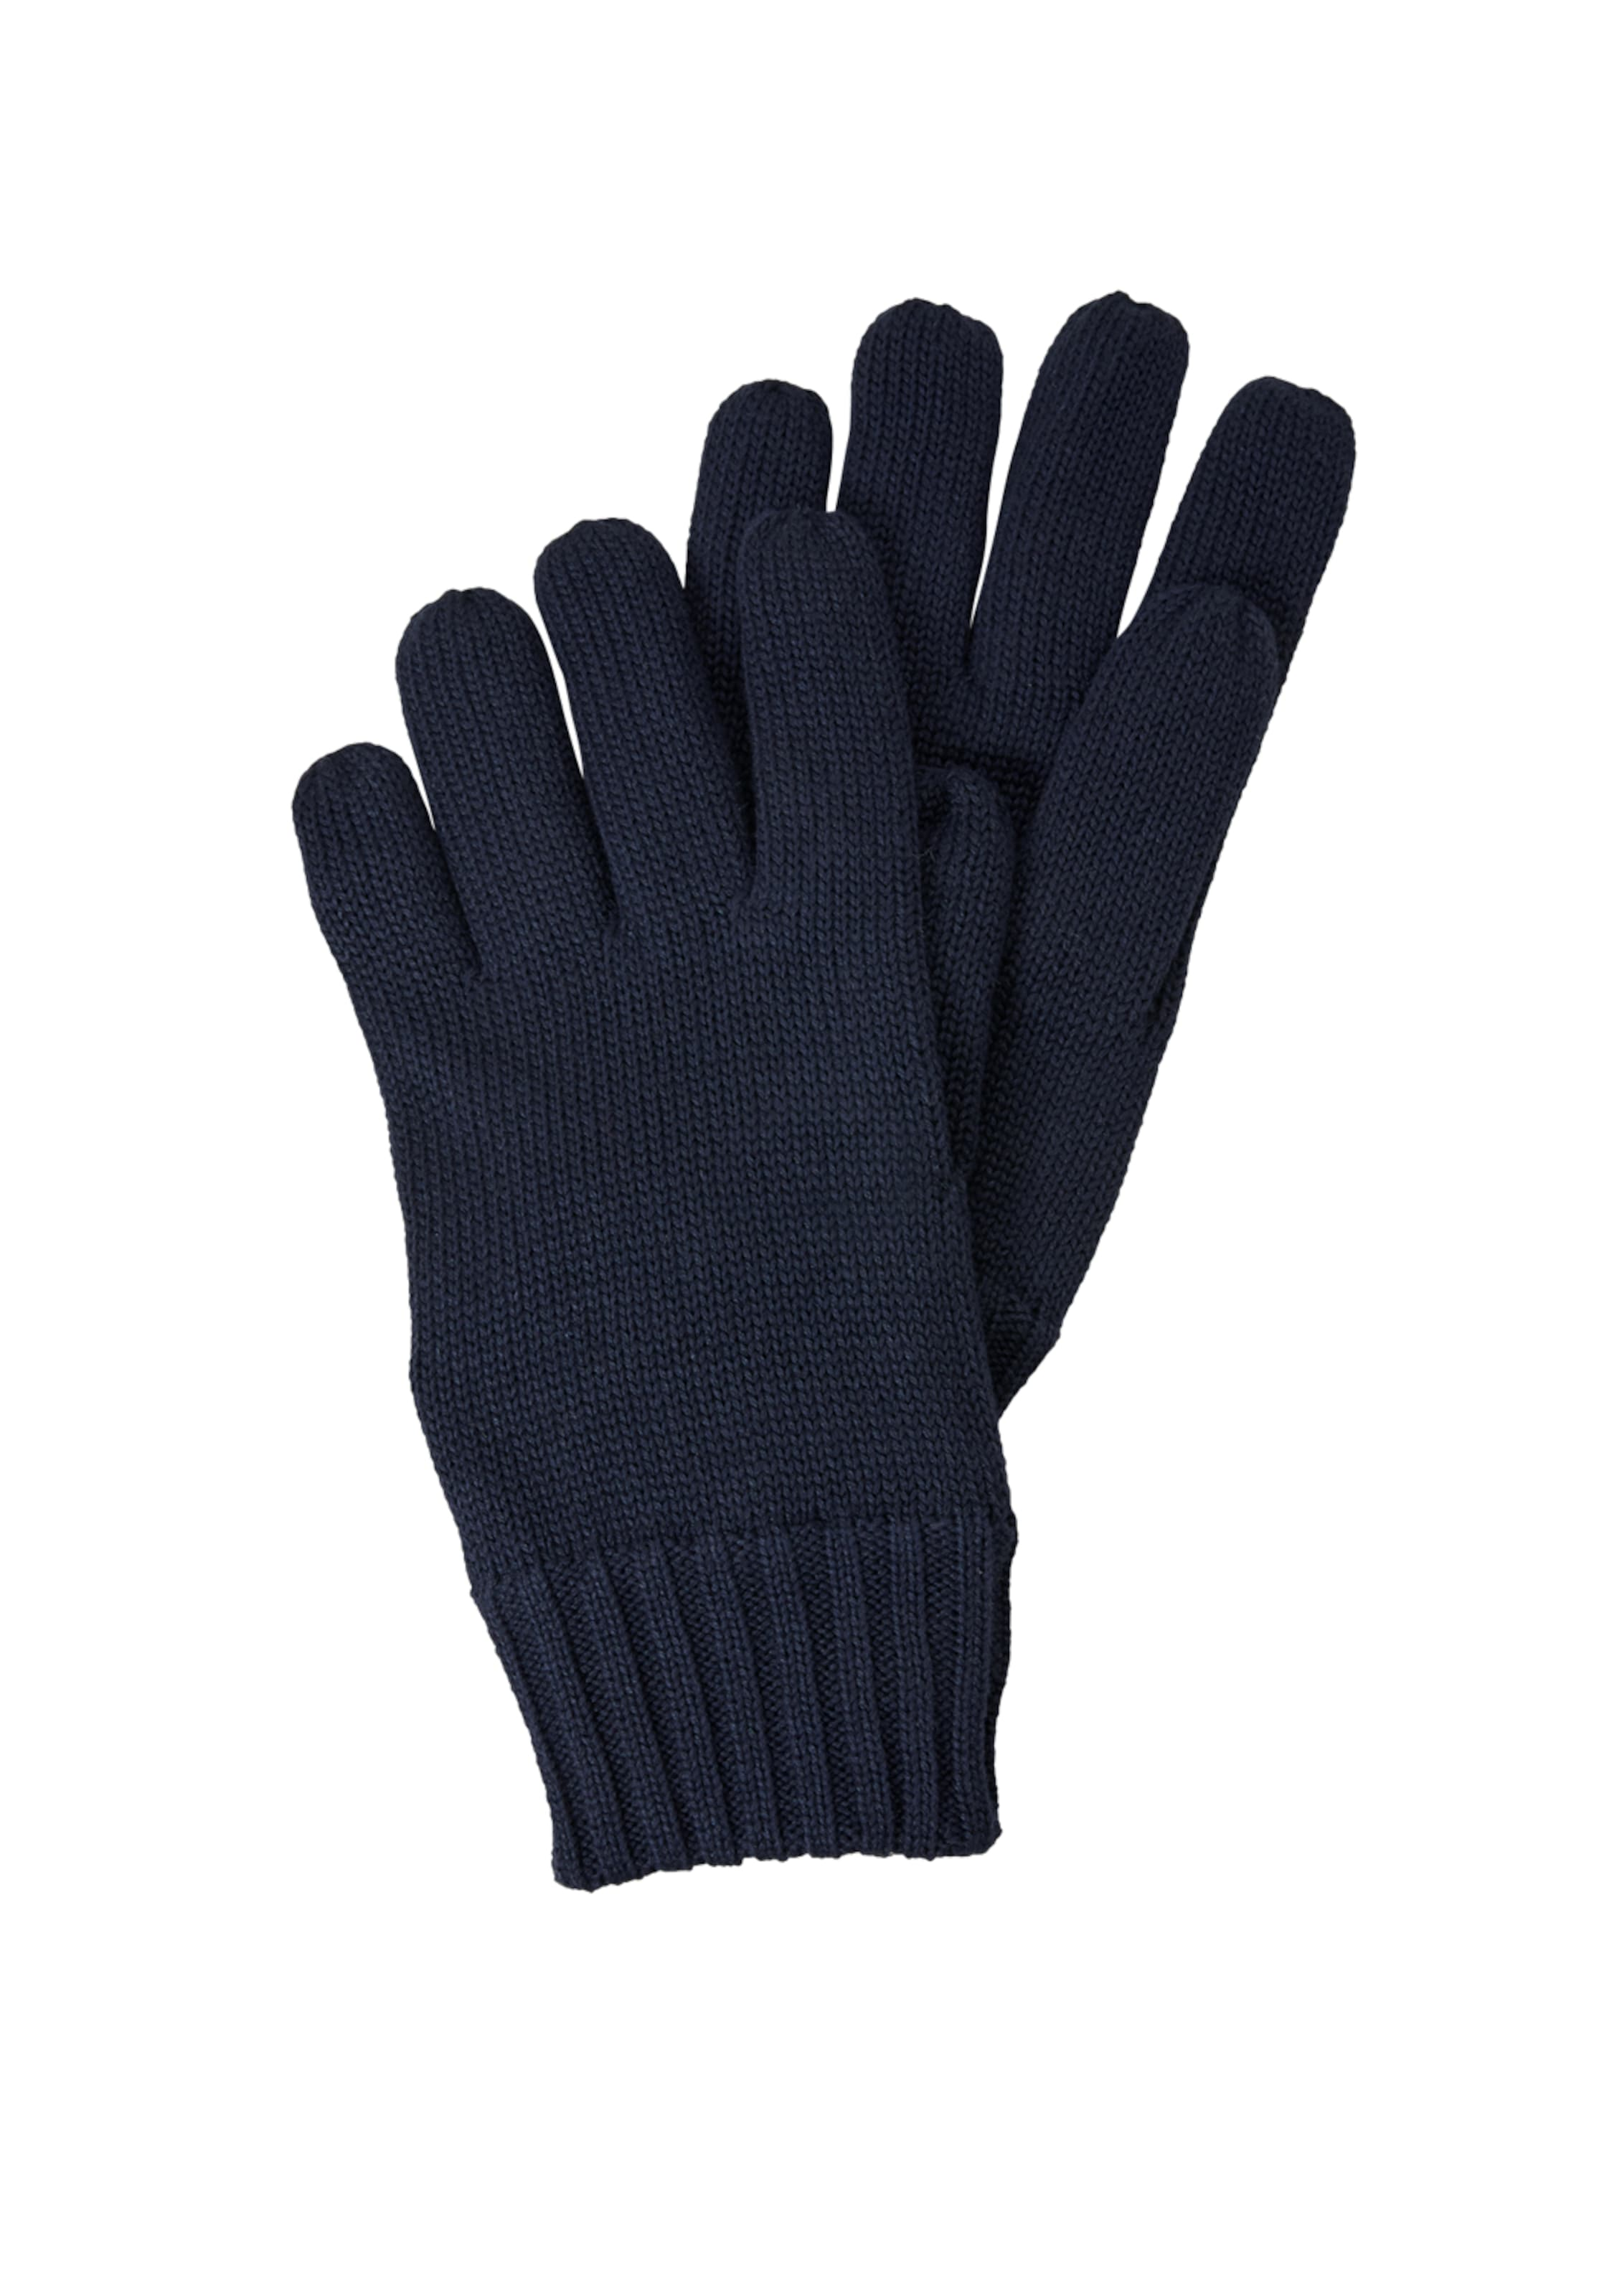 Handschuhe In Q By Designed Navy s xeCWQrdBo